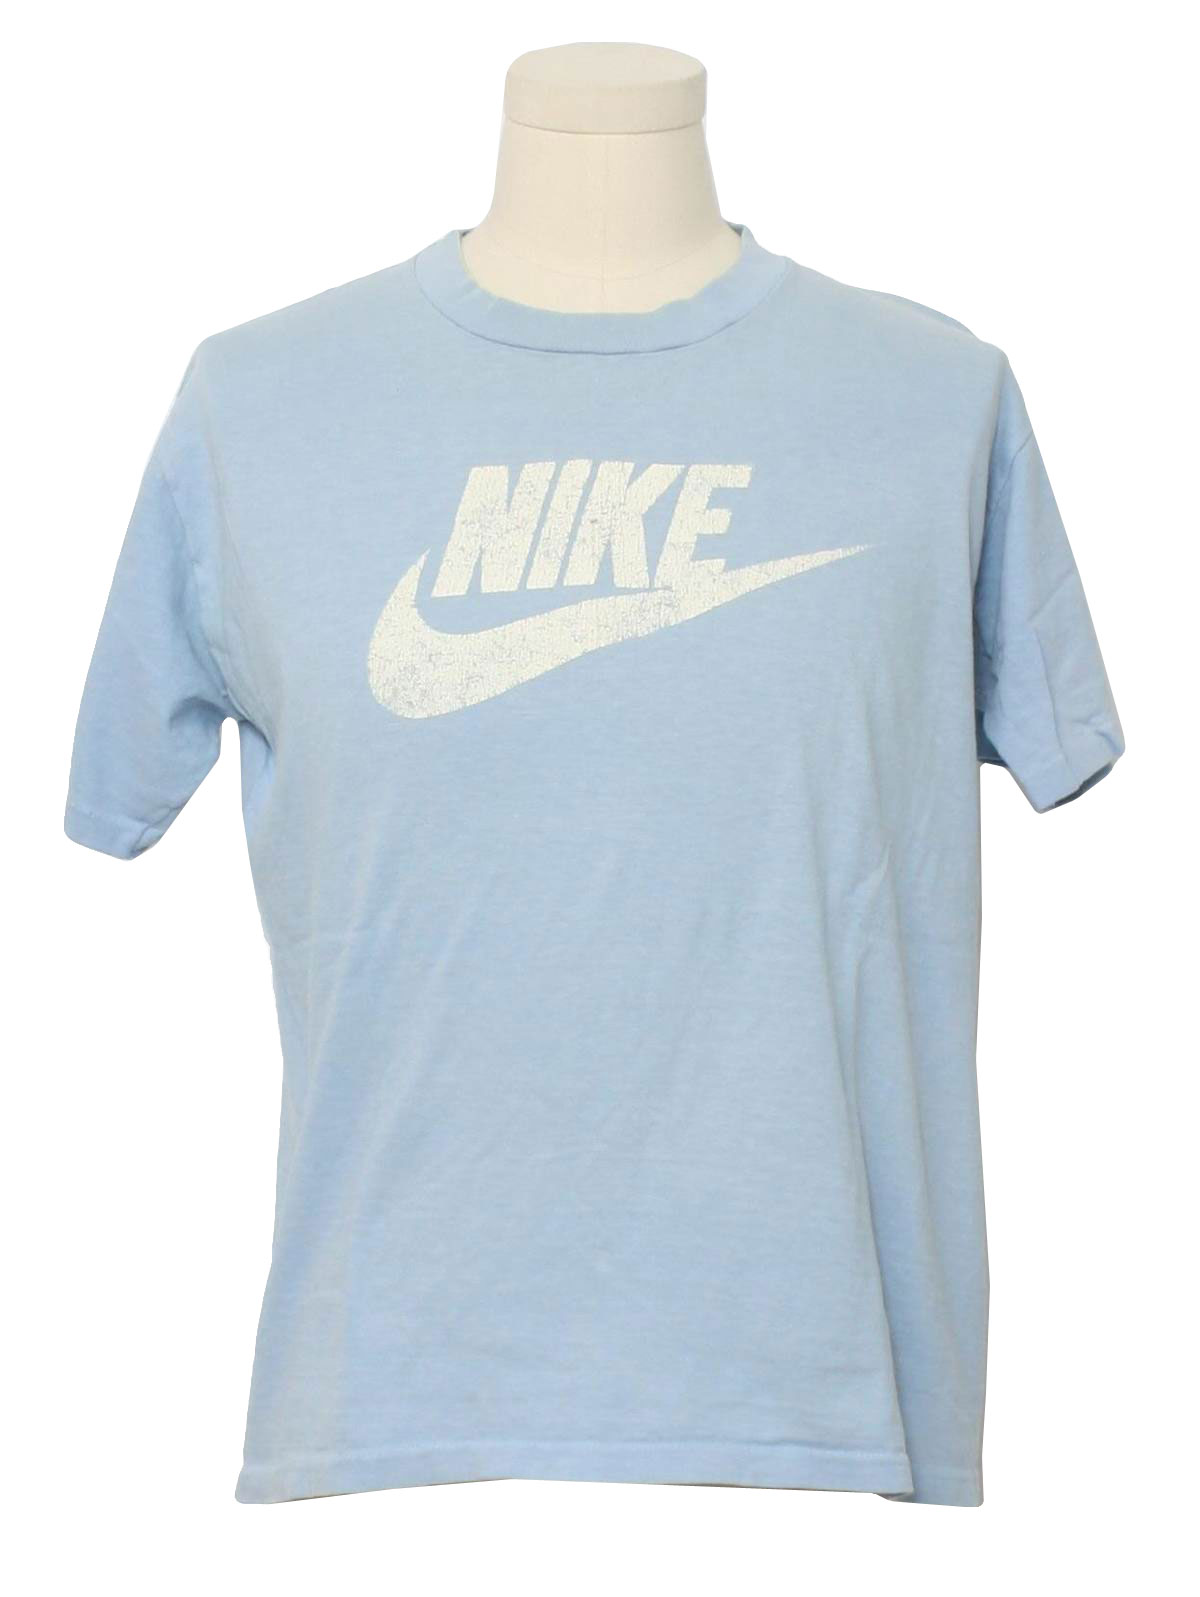 Seventies nike made in usa t shirt 70s nike made in usa Light blue t shirt mens